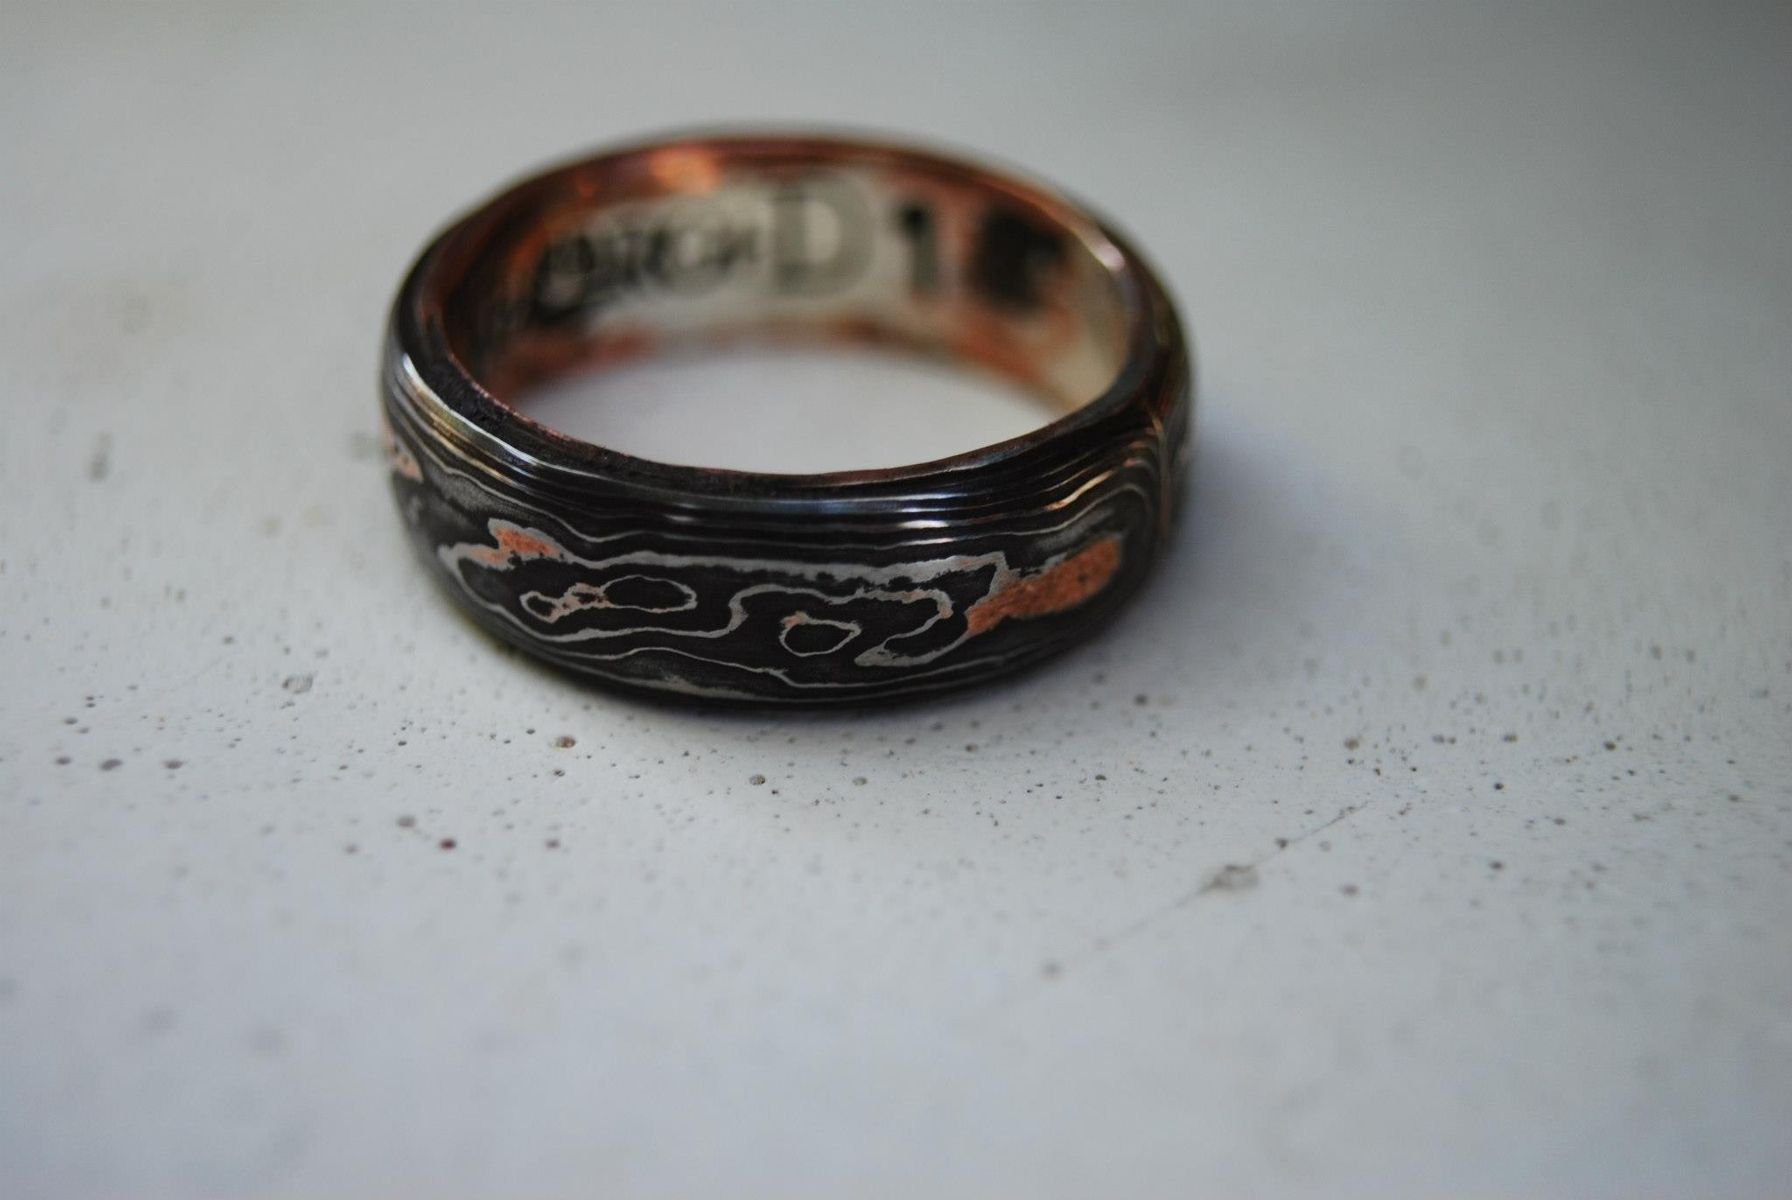 Hand made pattern welded damascus woodgrain wedding band for Custom made wedding bands to fit engagement ring